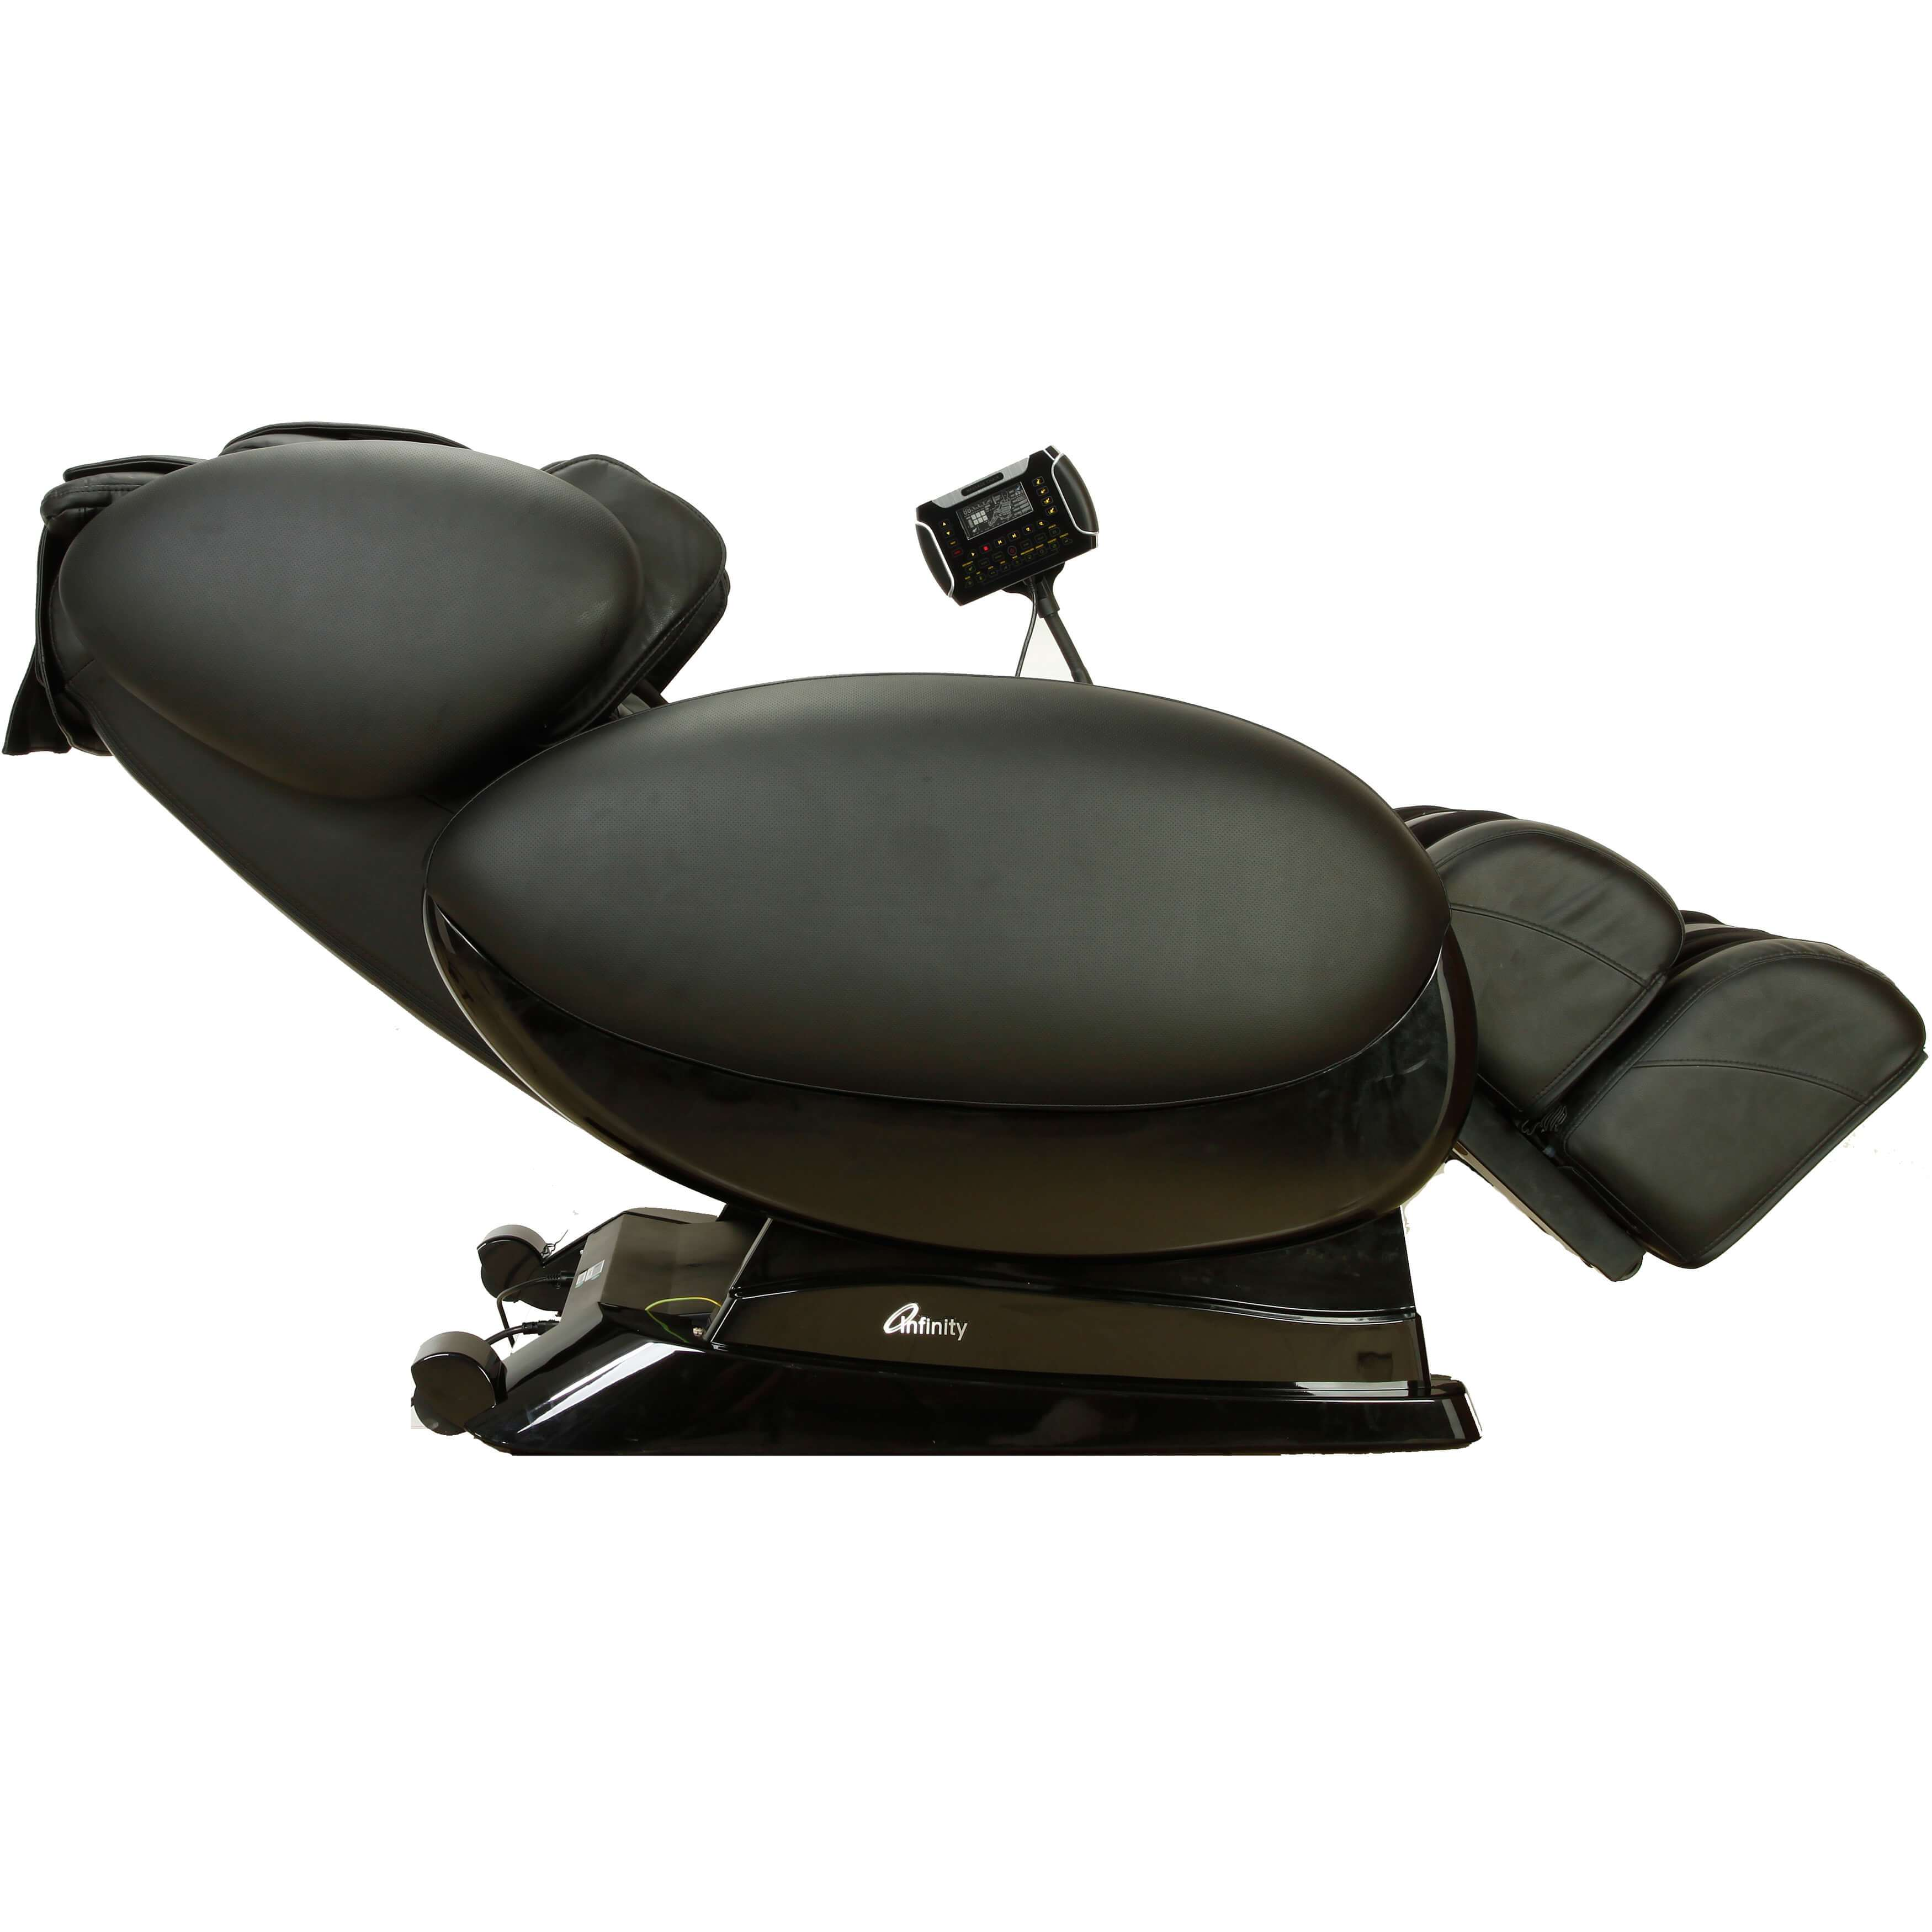 infinity massage chair oxo tot sprout high replacement cushion it 8500 body massager